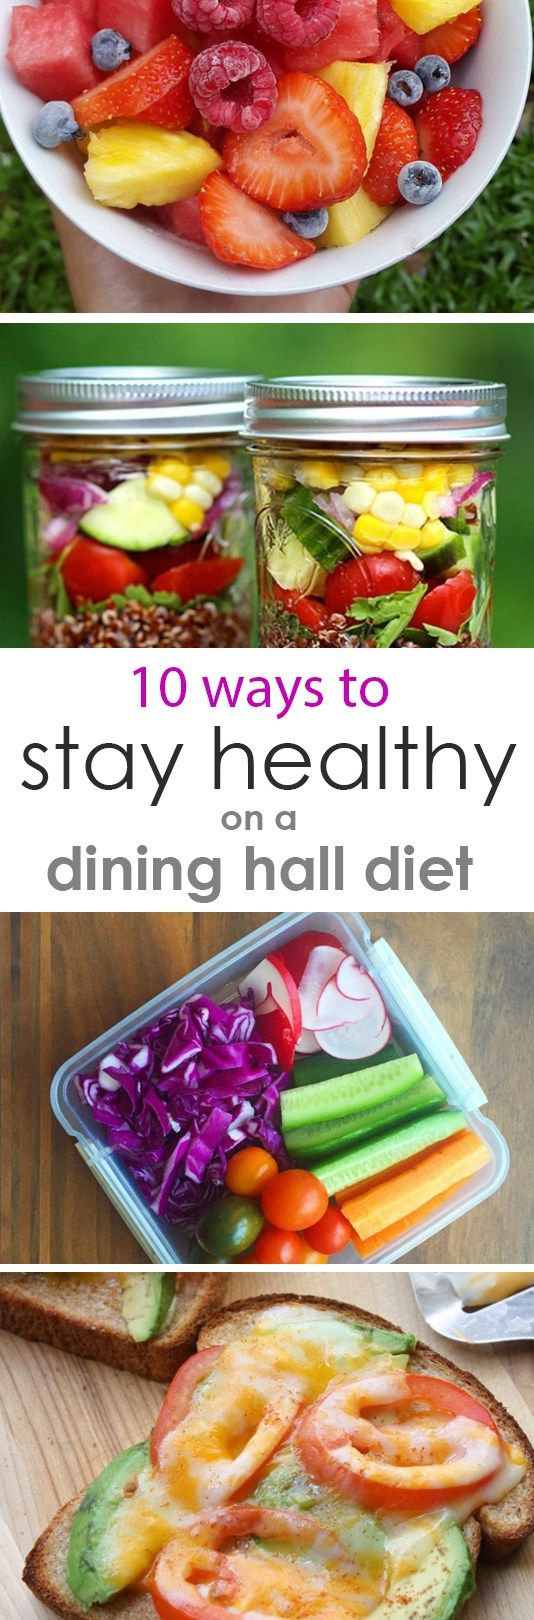 10 Ways to Stay Healthy on a Dining Hall Diet // Sick of college life food?